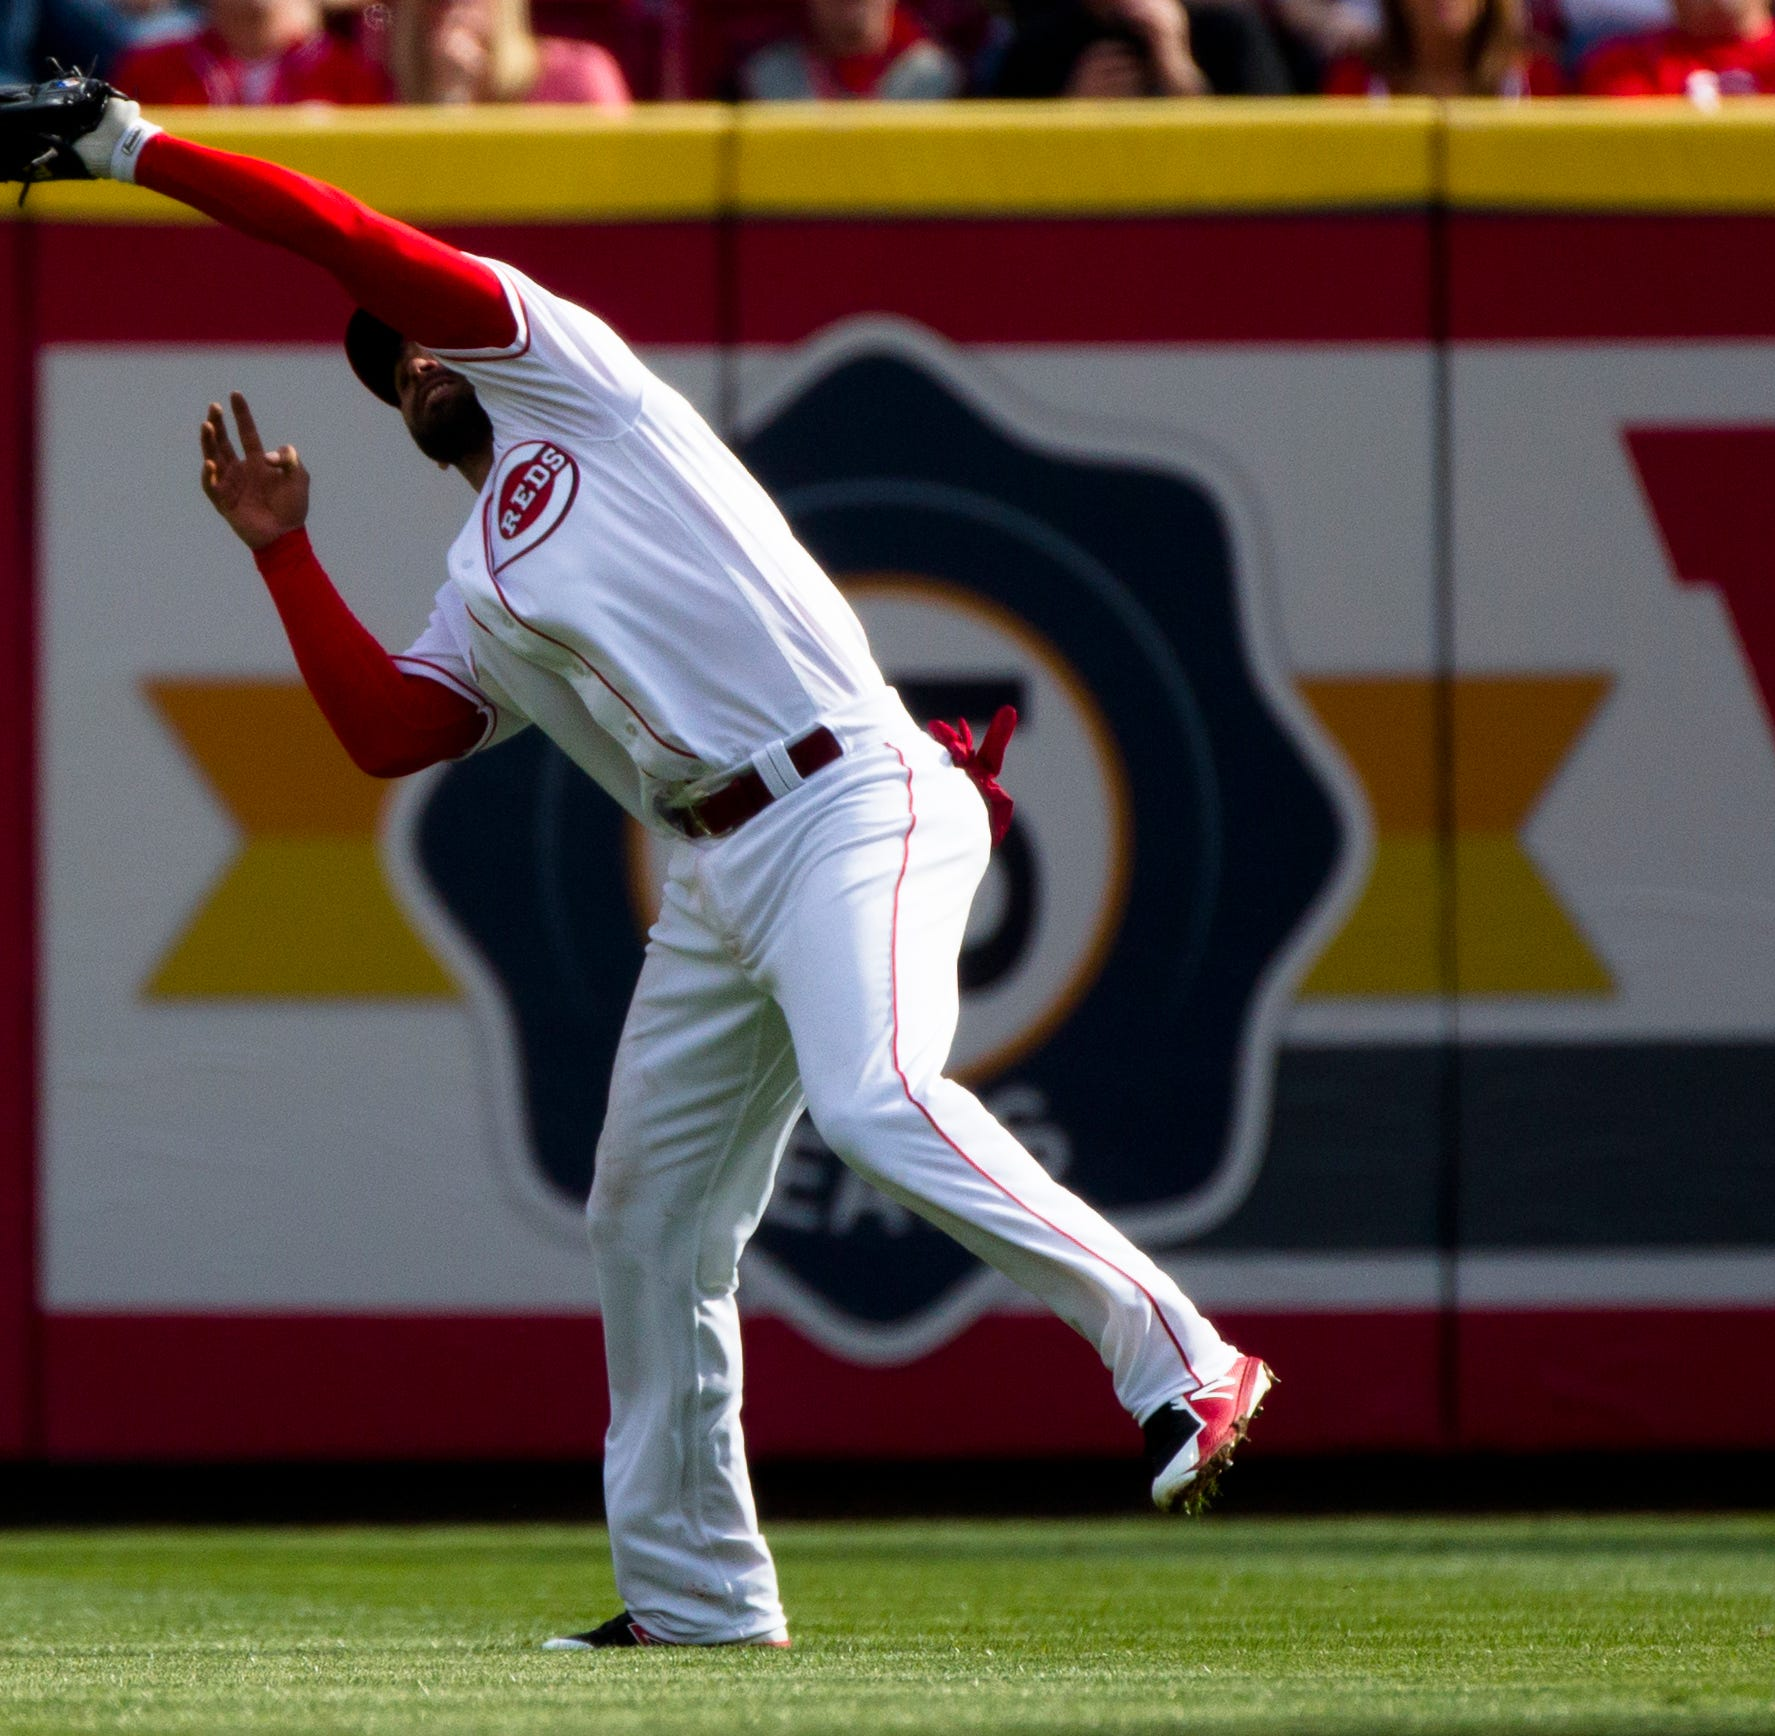 Cincinnati Reds blog: Is it time to consider playing José Peraza in center field?